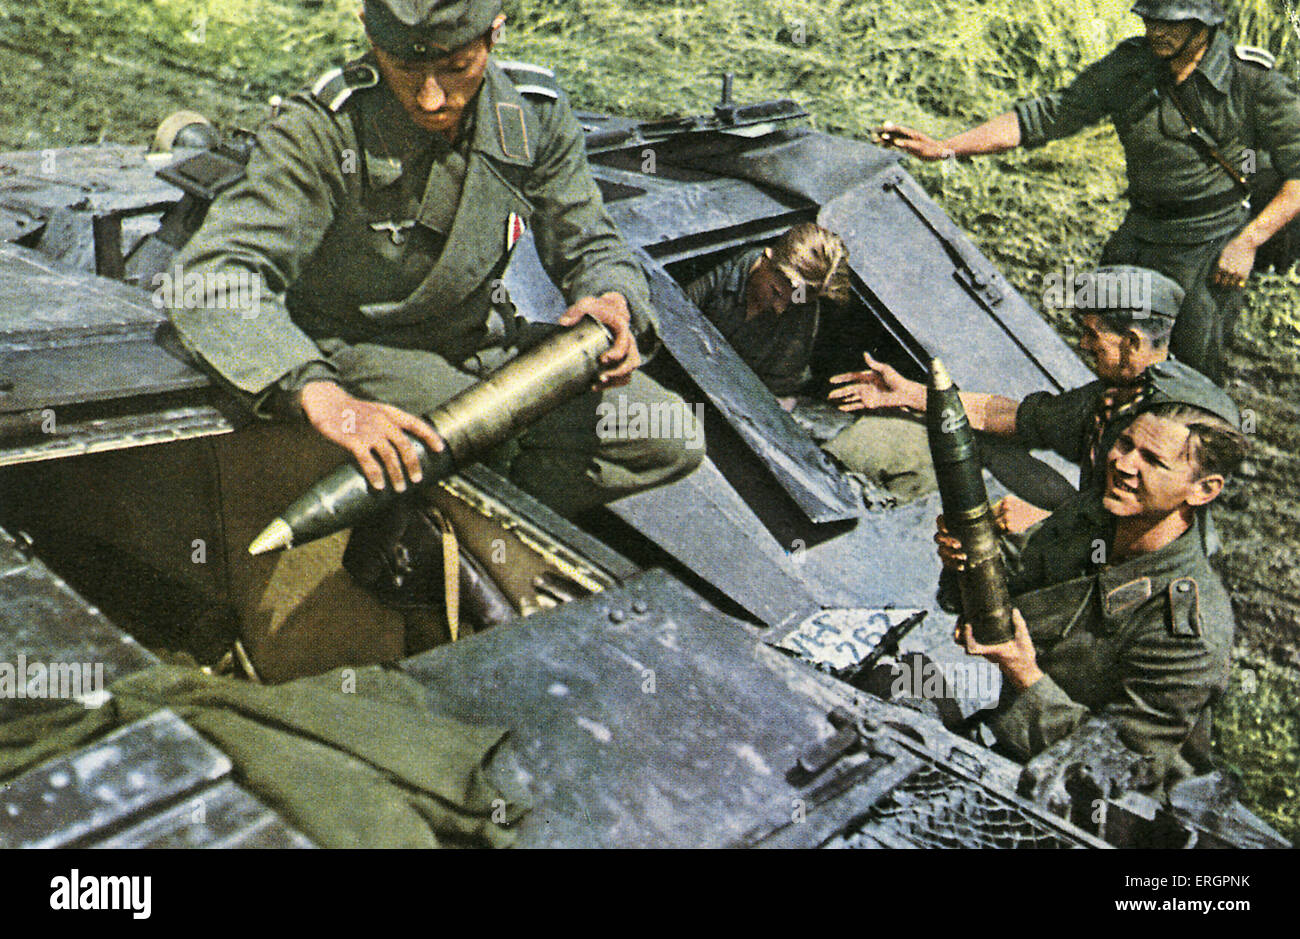 WW2 - Eastern Front. Soldiers load an assault cannon with ammunition. - Stock Image